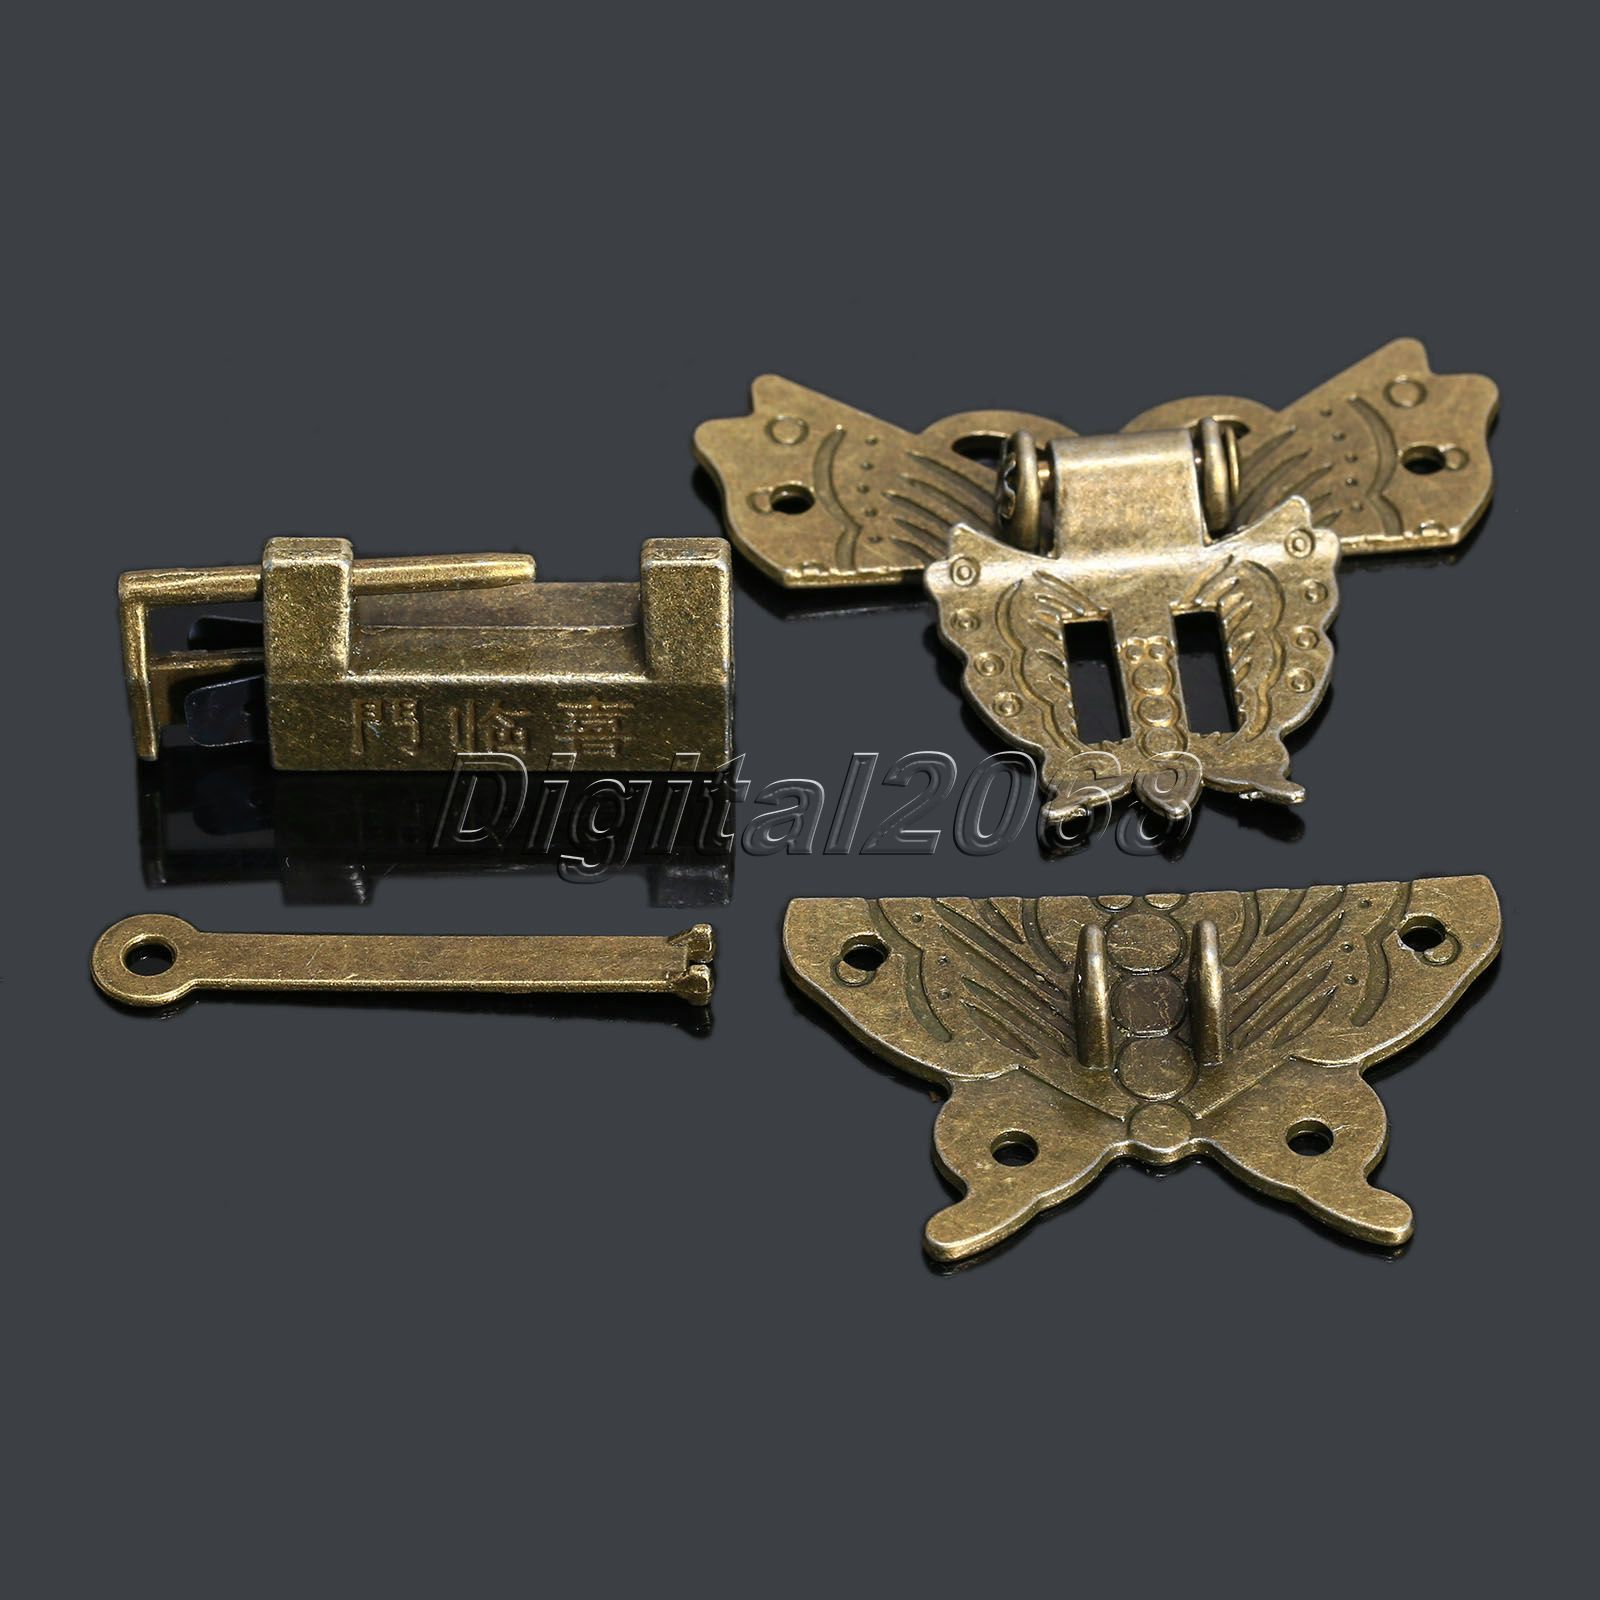 6Pcs Antique Latches Jewelry Gift Wooden Suitcase Case Hasp Antique Decorative Latch Hook Lock for Box Craft+Screws+Lock 59x55mm(China (Mainland))